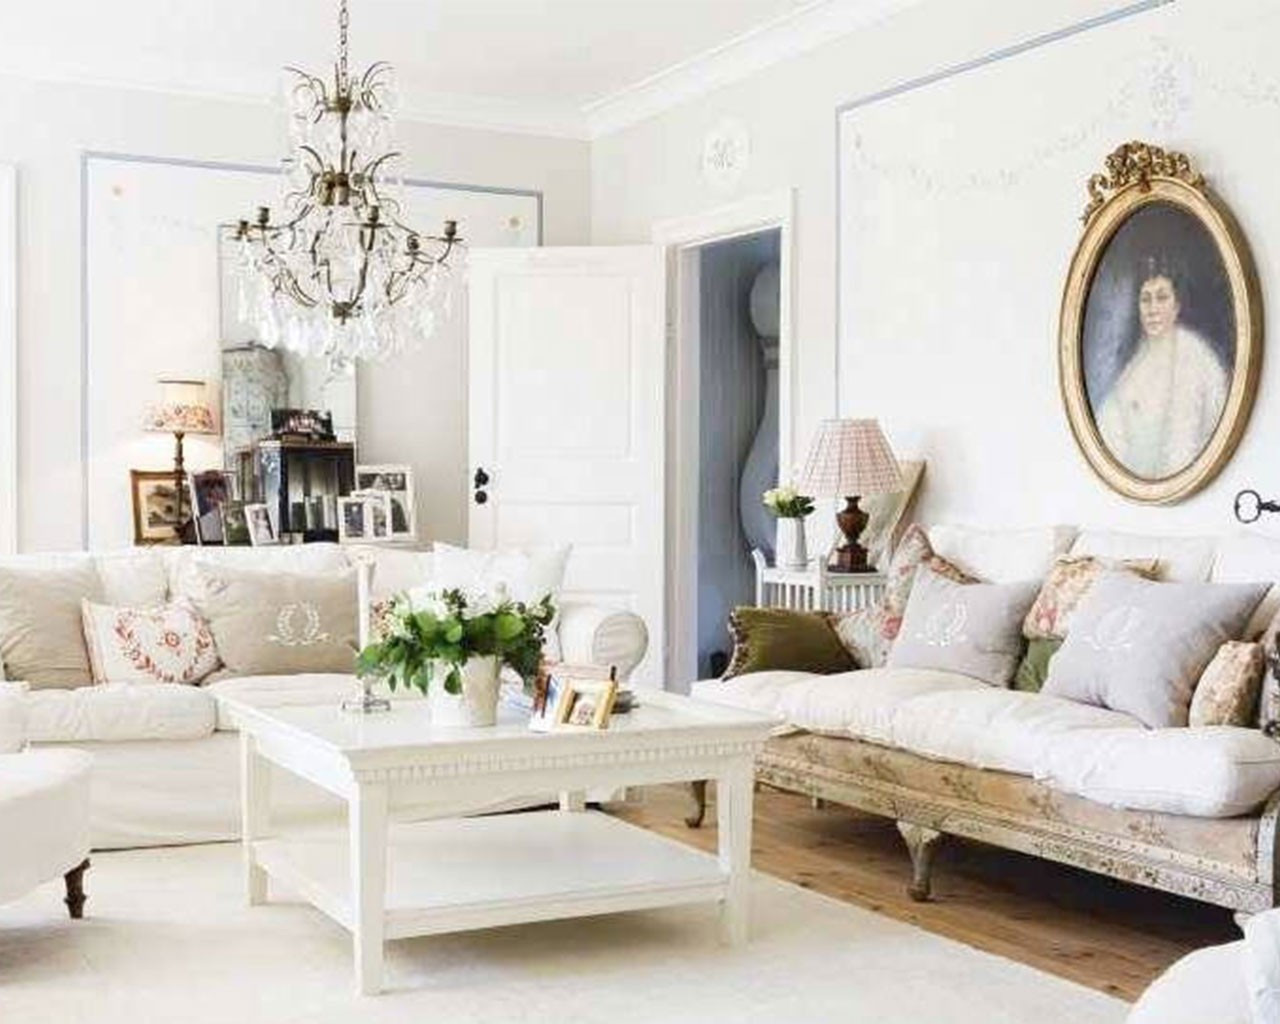 22 Awesome White Floor Vases Cheap 2021 free download white floor vases cheap of white living room decor lovely living room white floor vase luxury h for living room decorating ideas white living room furniture beautiful salon zdjac2a2ac2a2cie